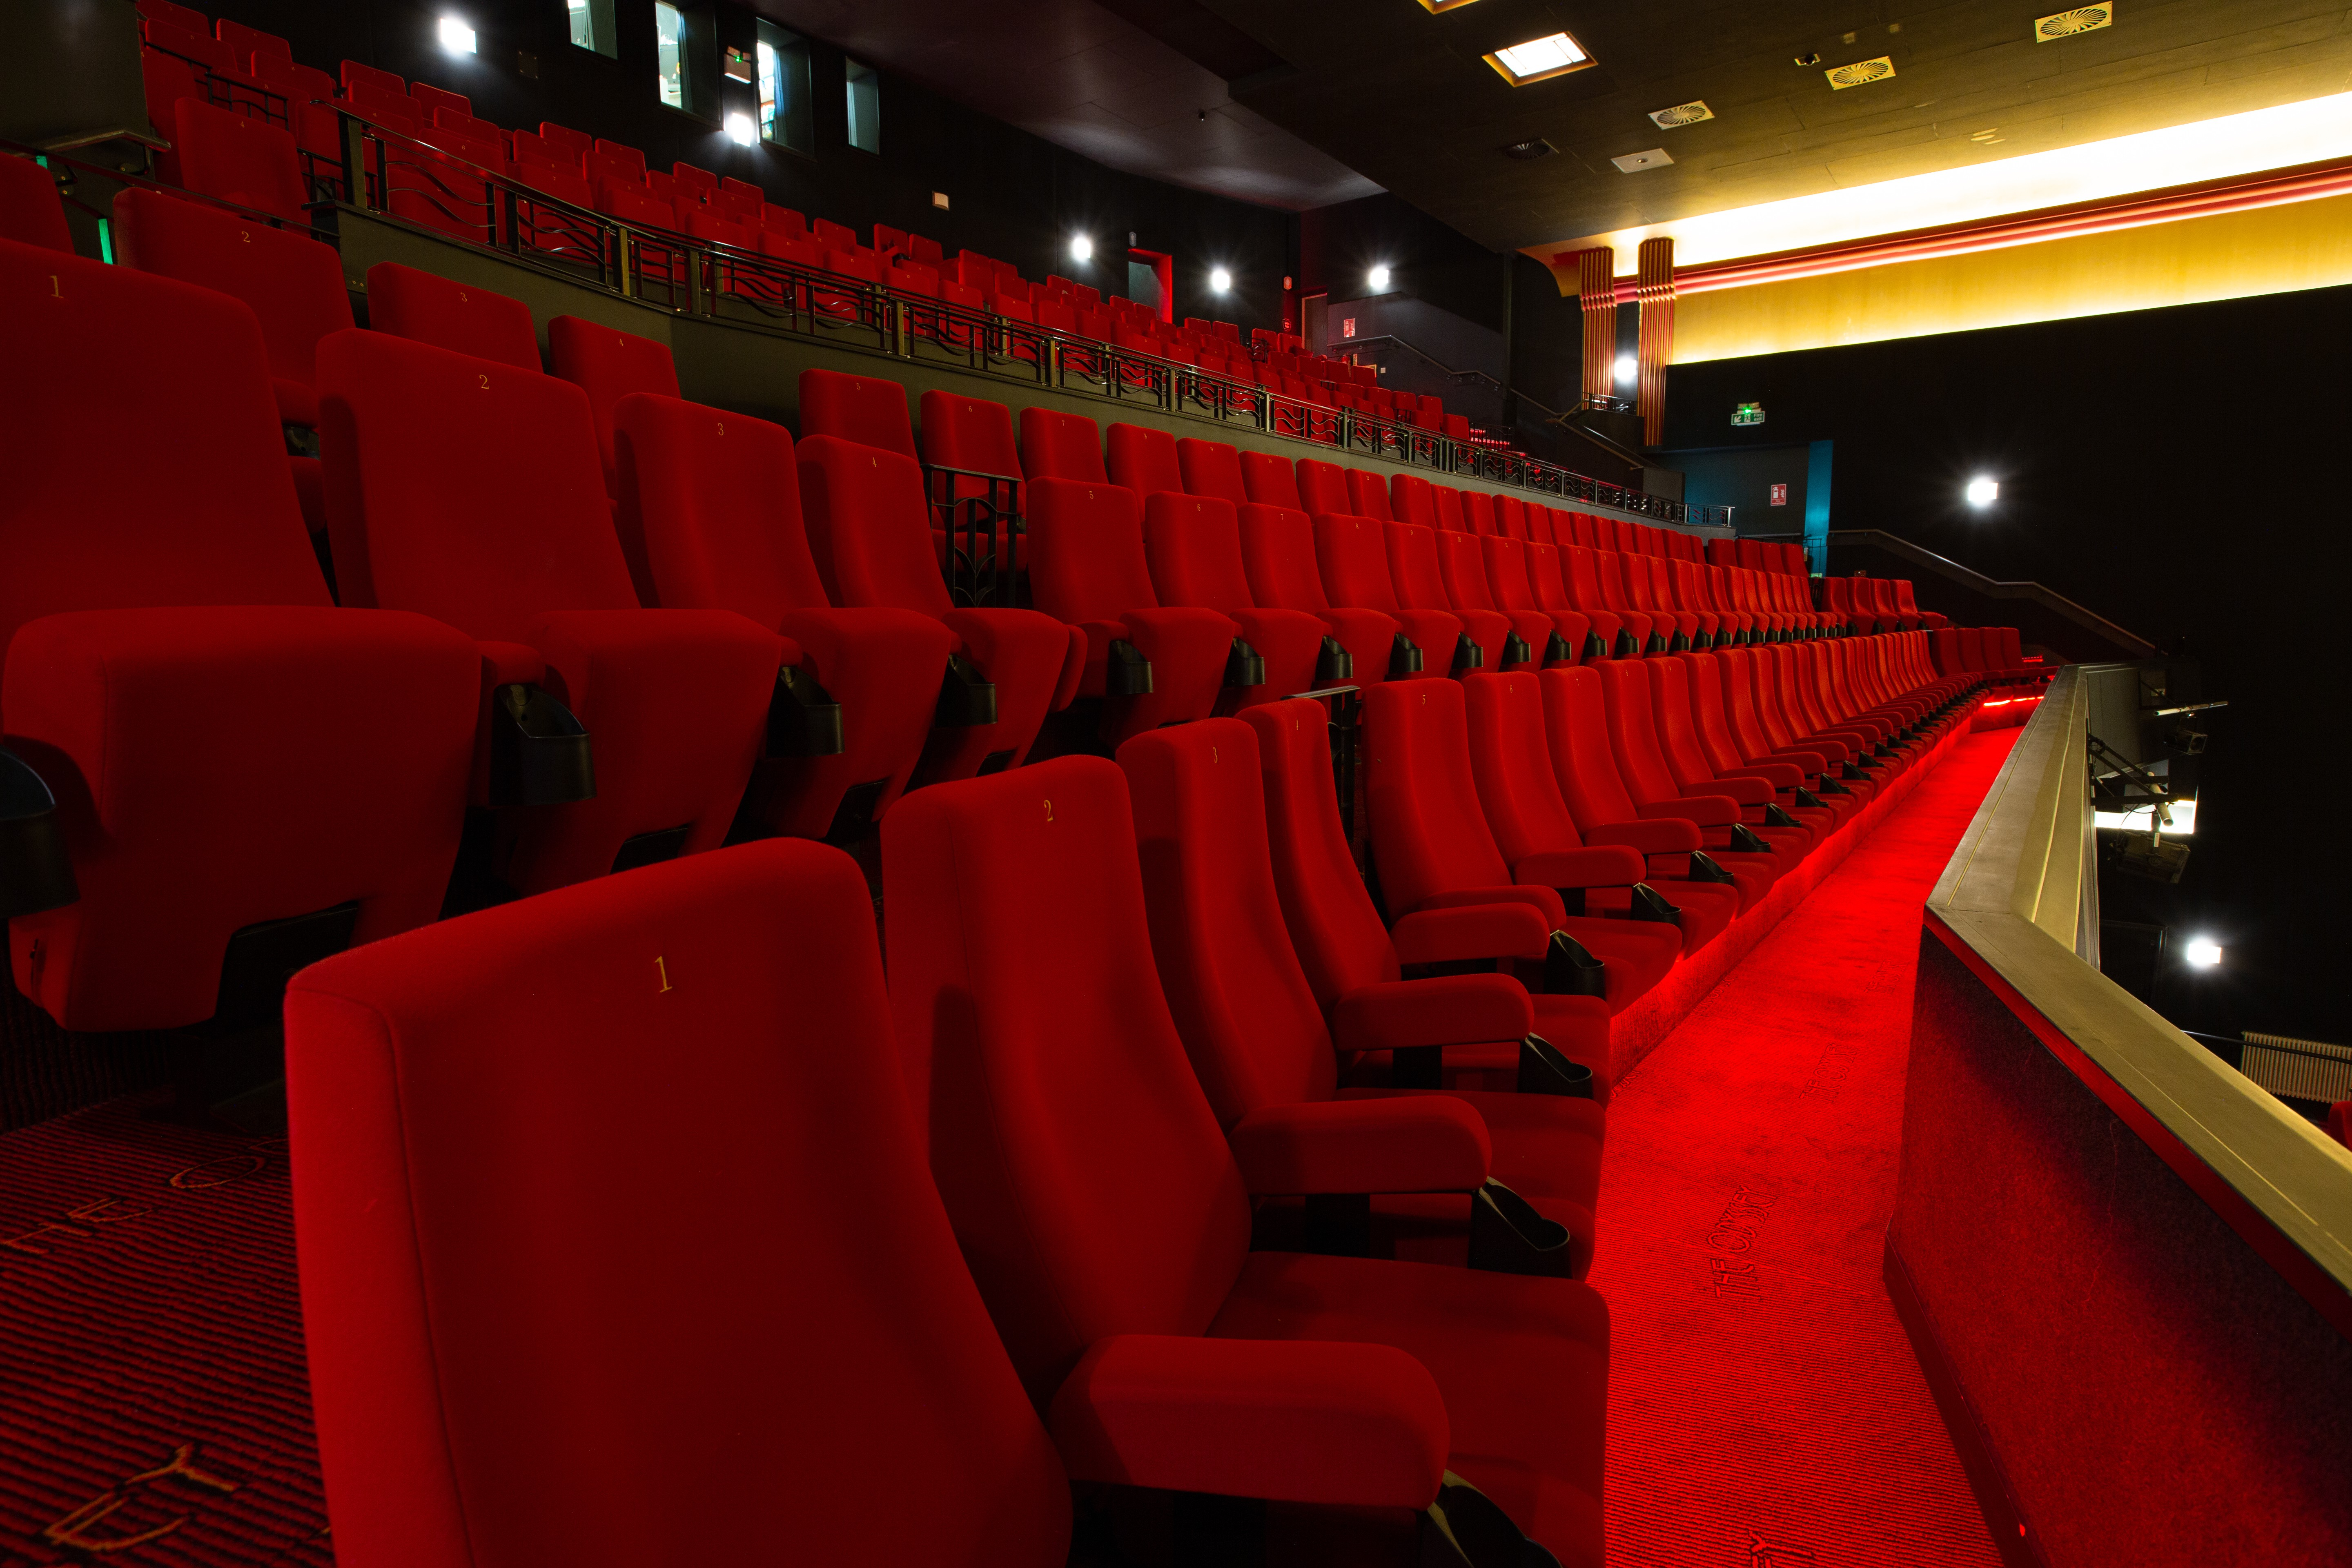 Upstairs Seating Rows